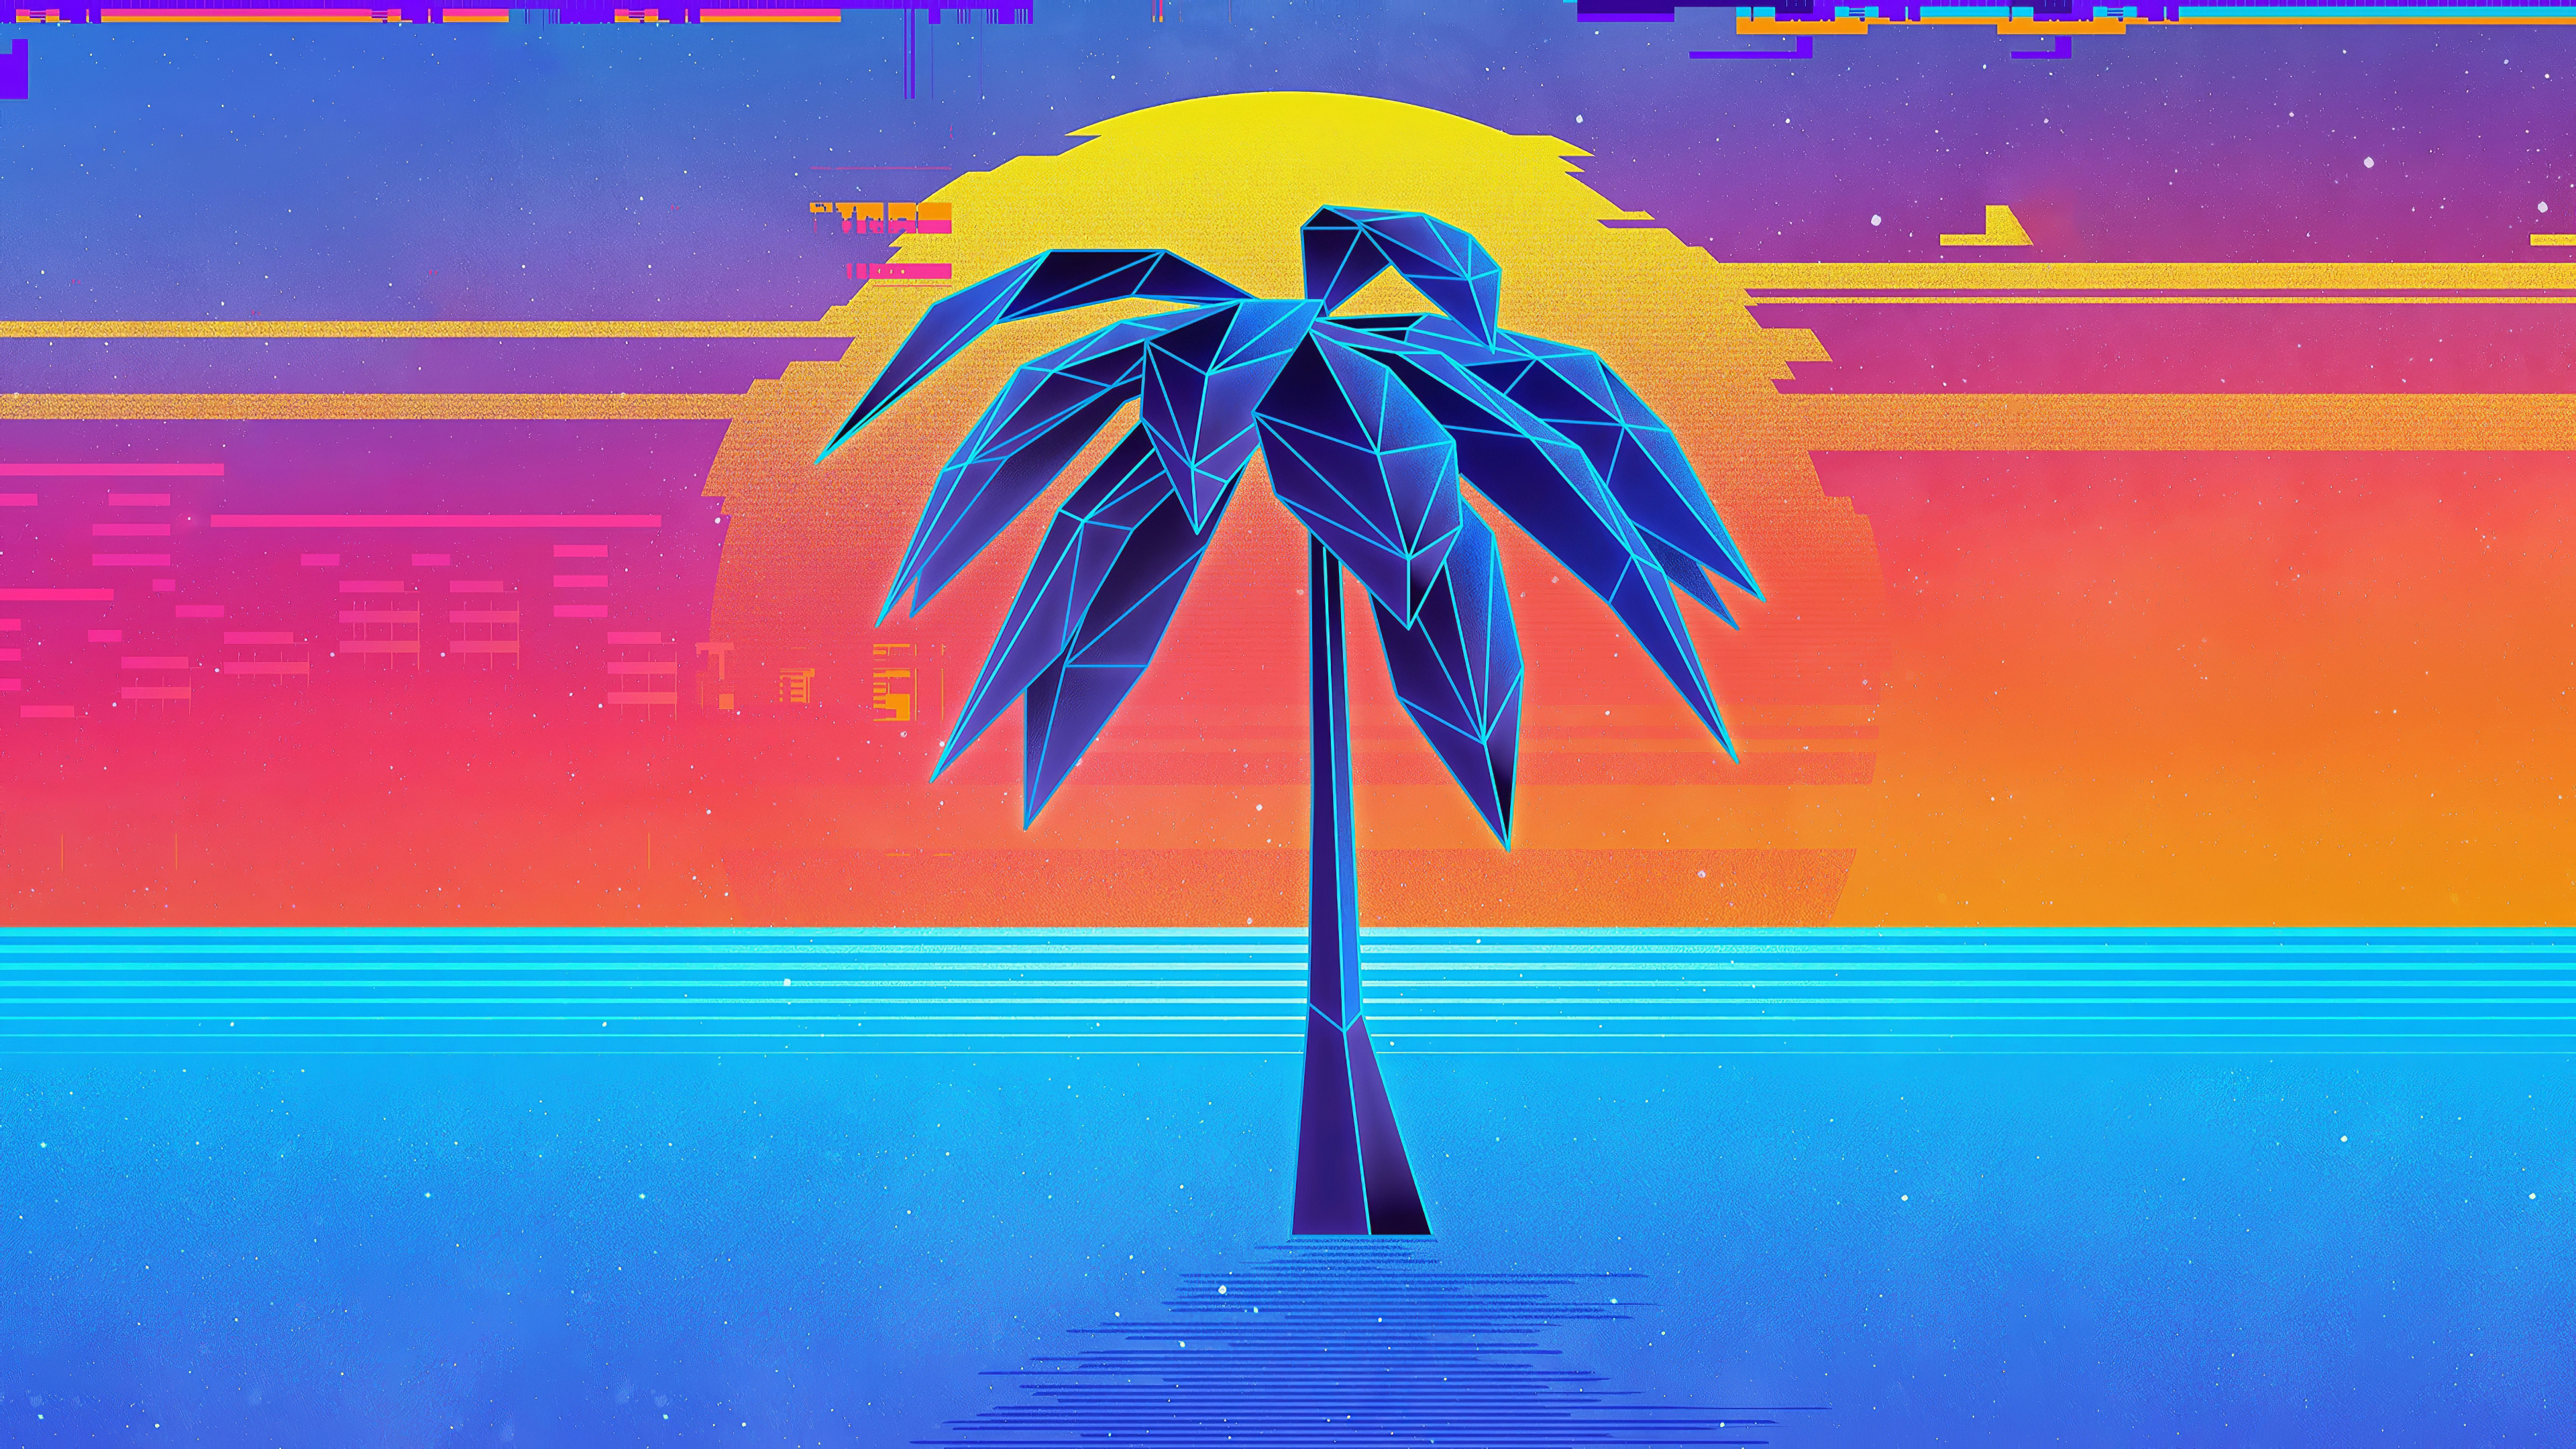 1152x864 Palm Tree Retro Synthwave 4k 1152x864 Resolution Hd 4k Wallpapers Images Backgrounds Photos And Pictures